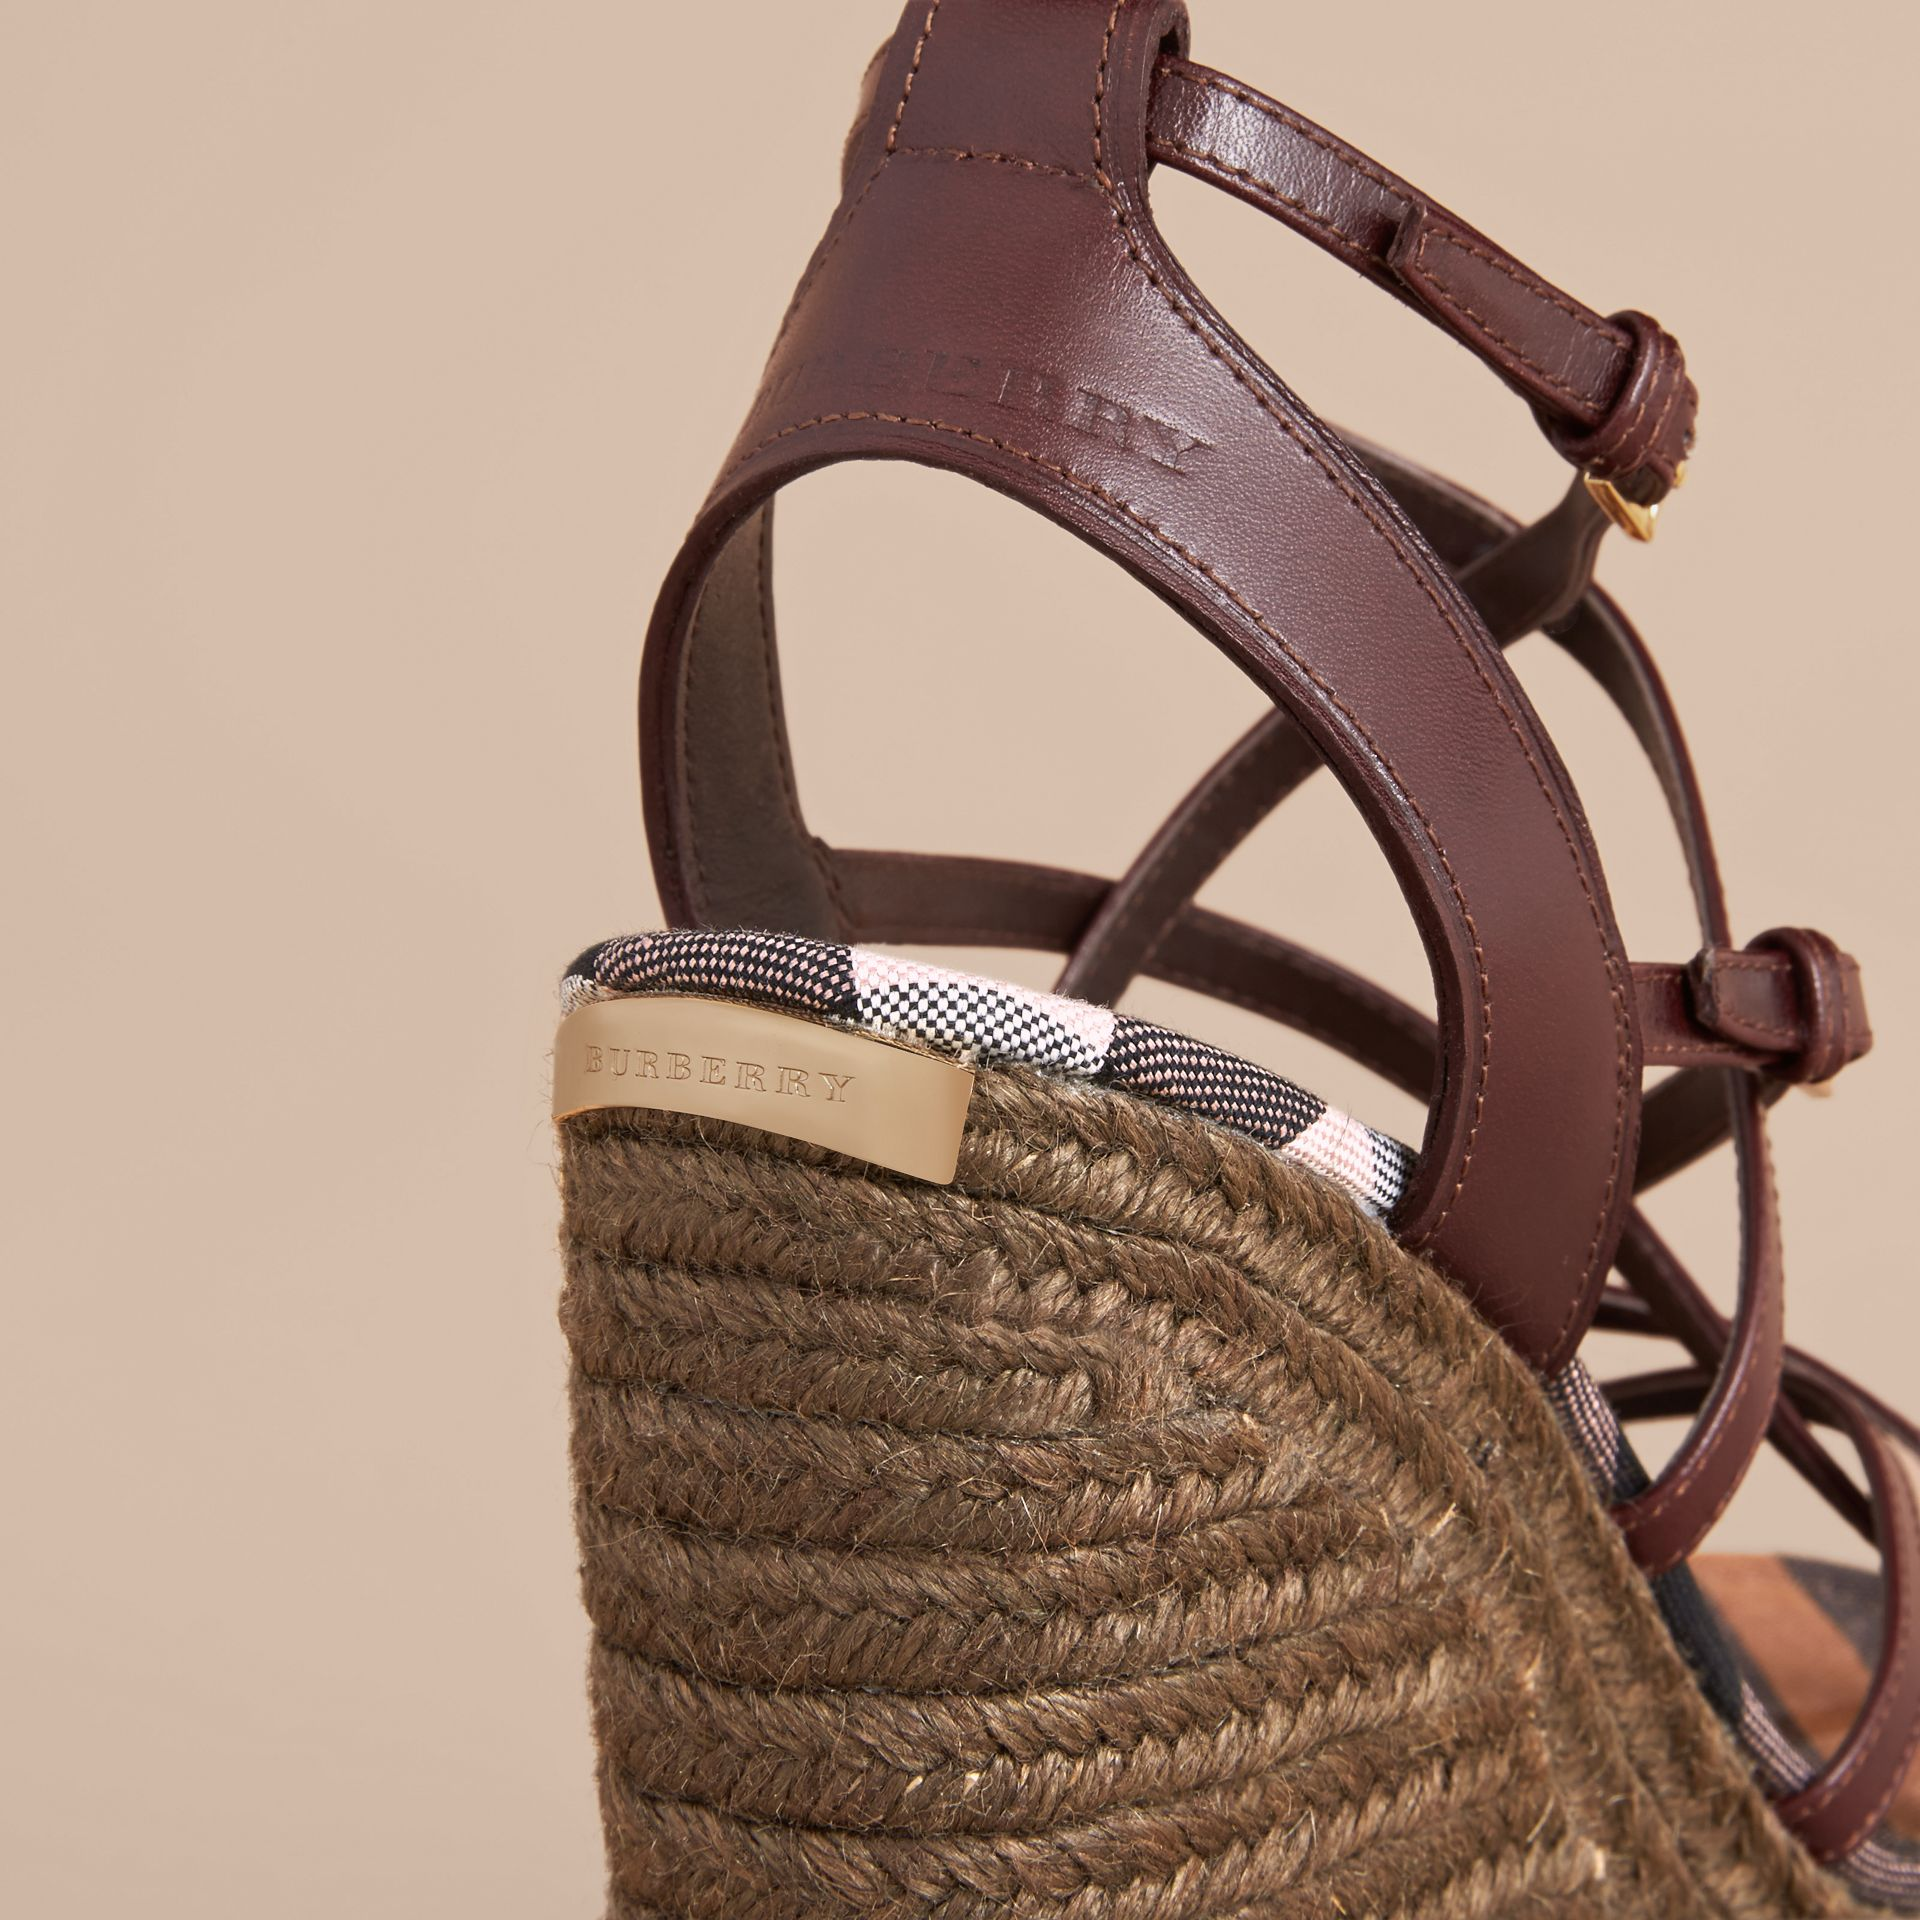 Leather Platform Espadrille Wedge Sandals in Cerise Purple - Women | Burberry - gallery image 2